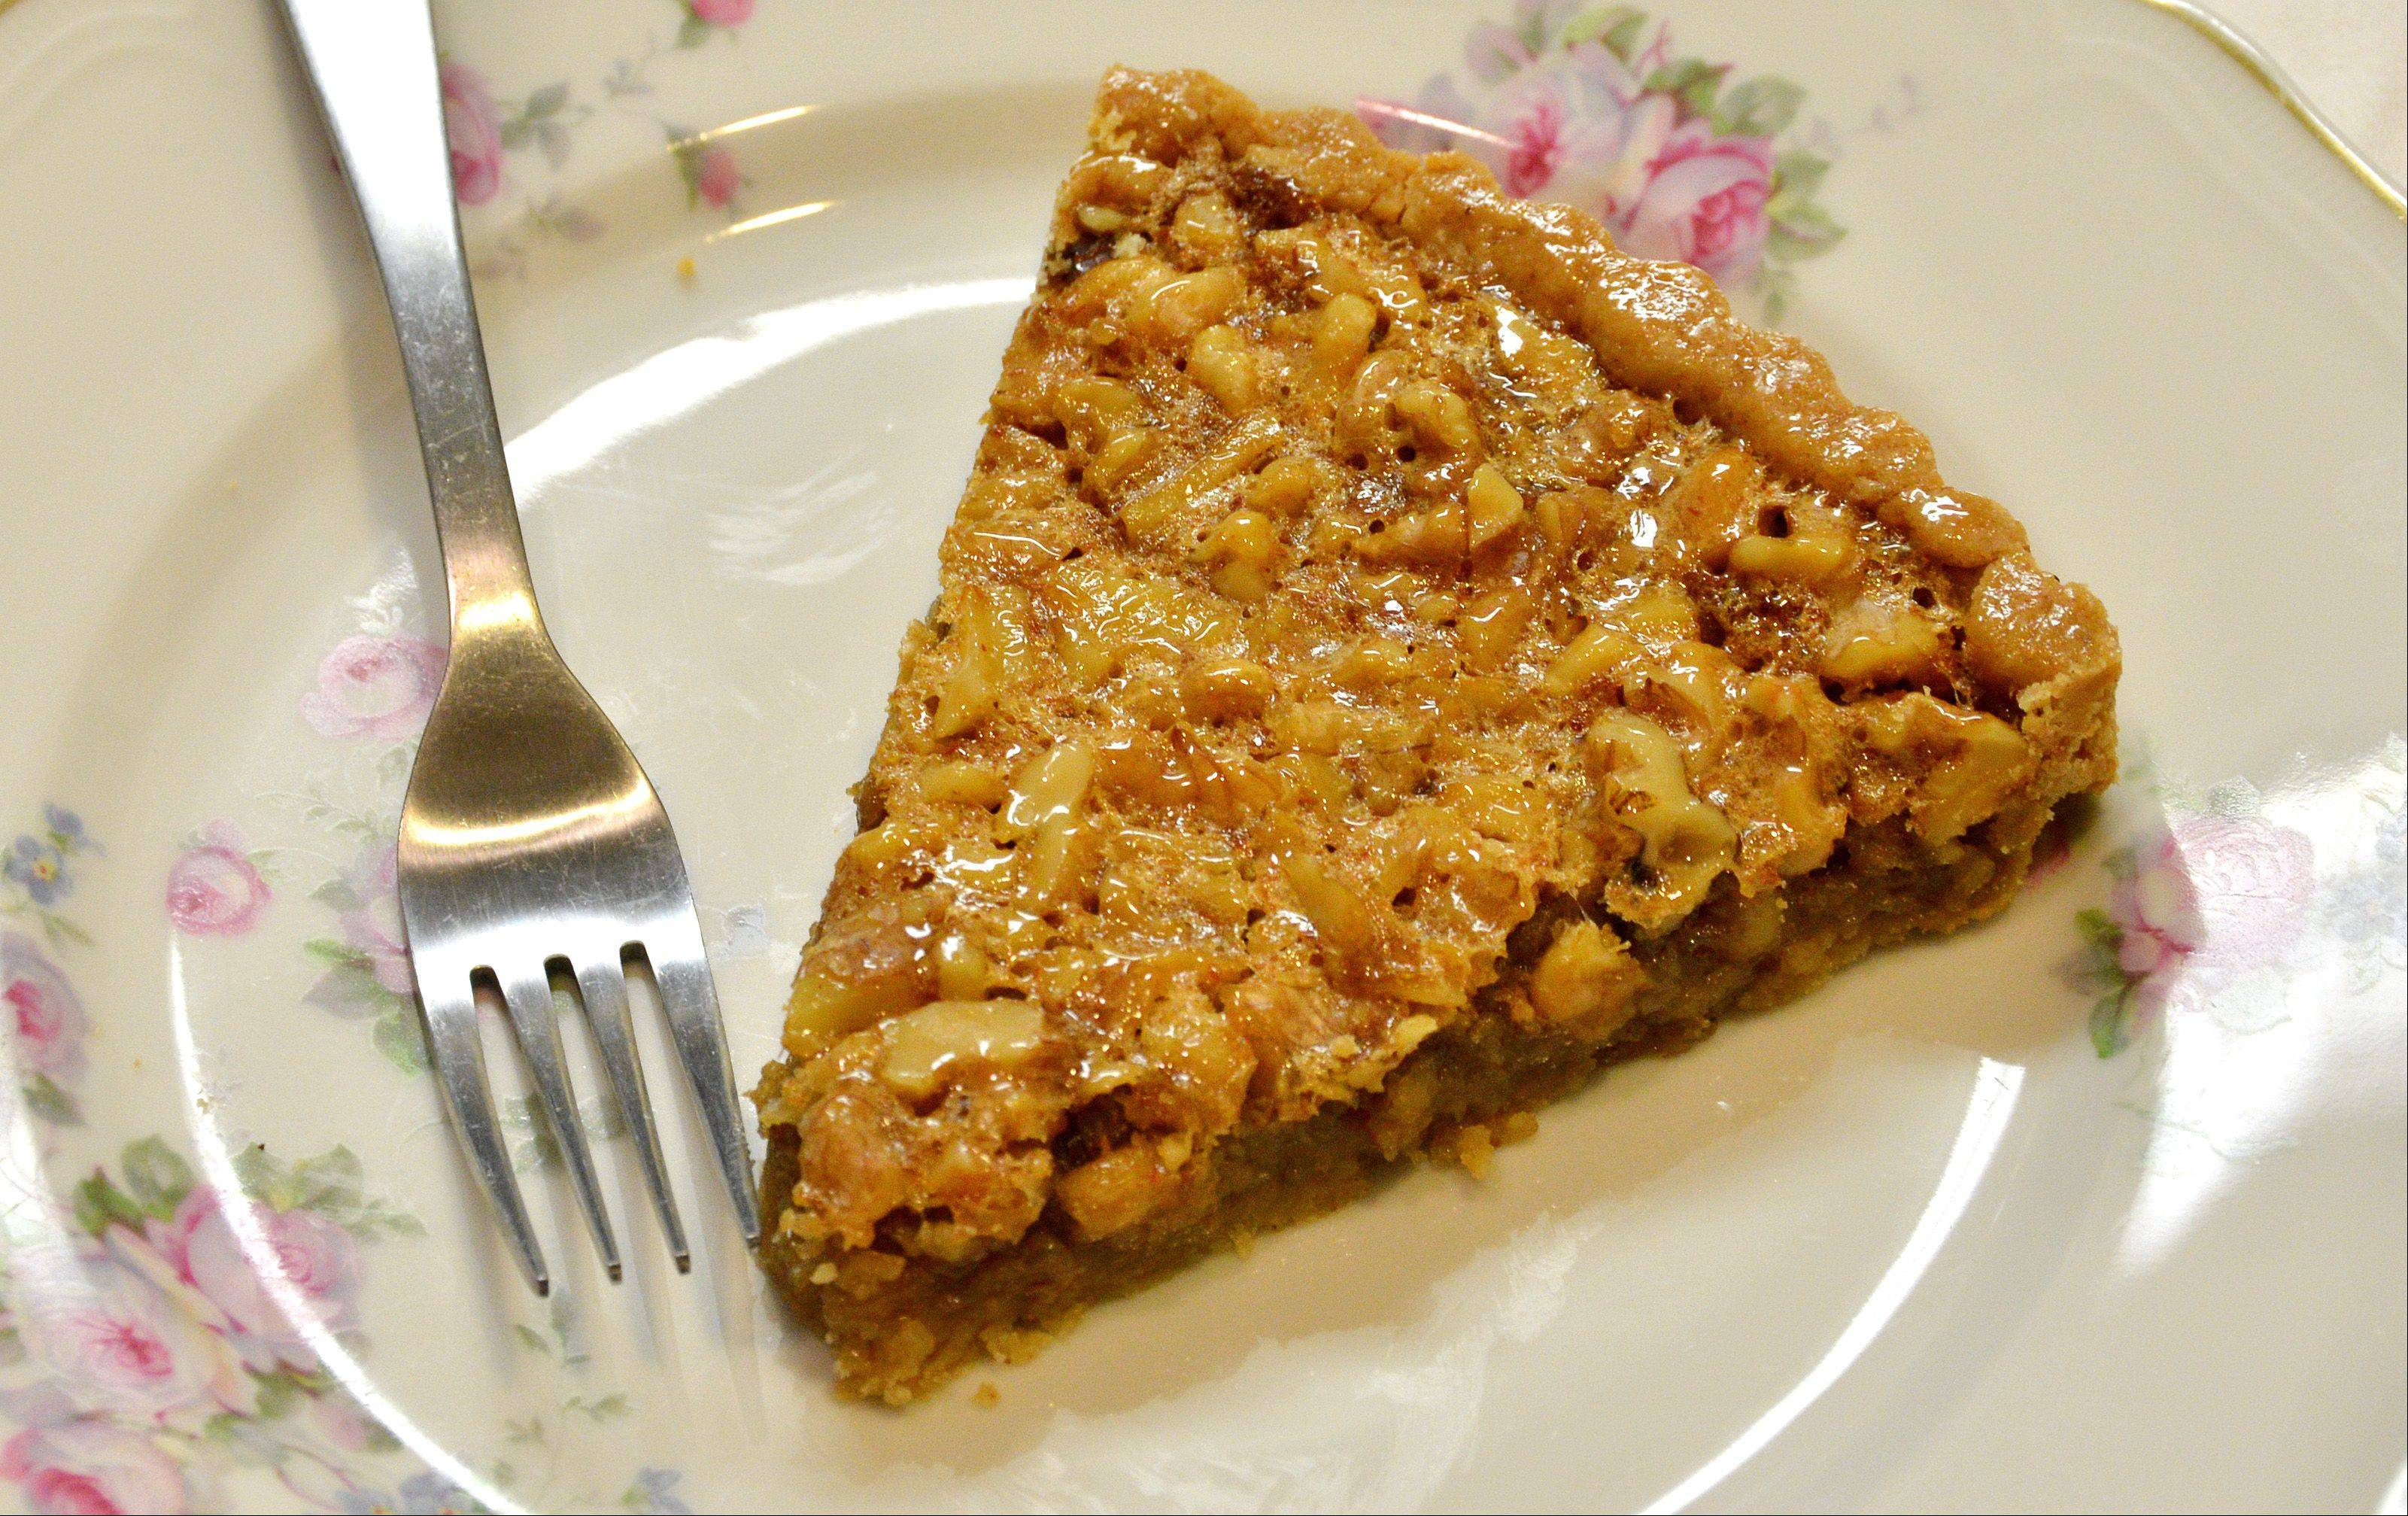 Annie Overboe gave traditional pecan pie a makeover with walnuts as the starring nut and a more savory spiced crust.